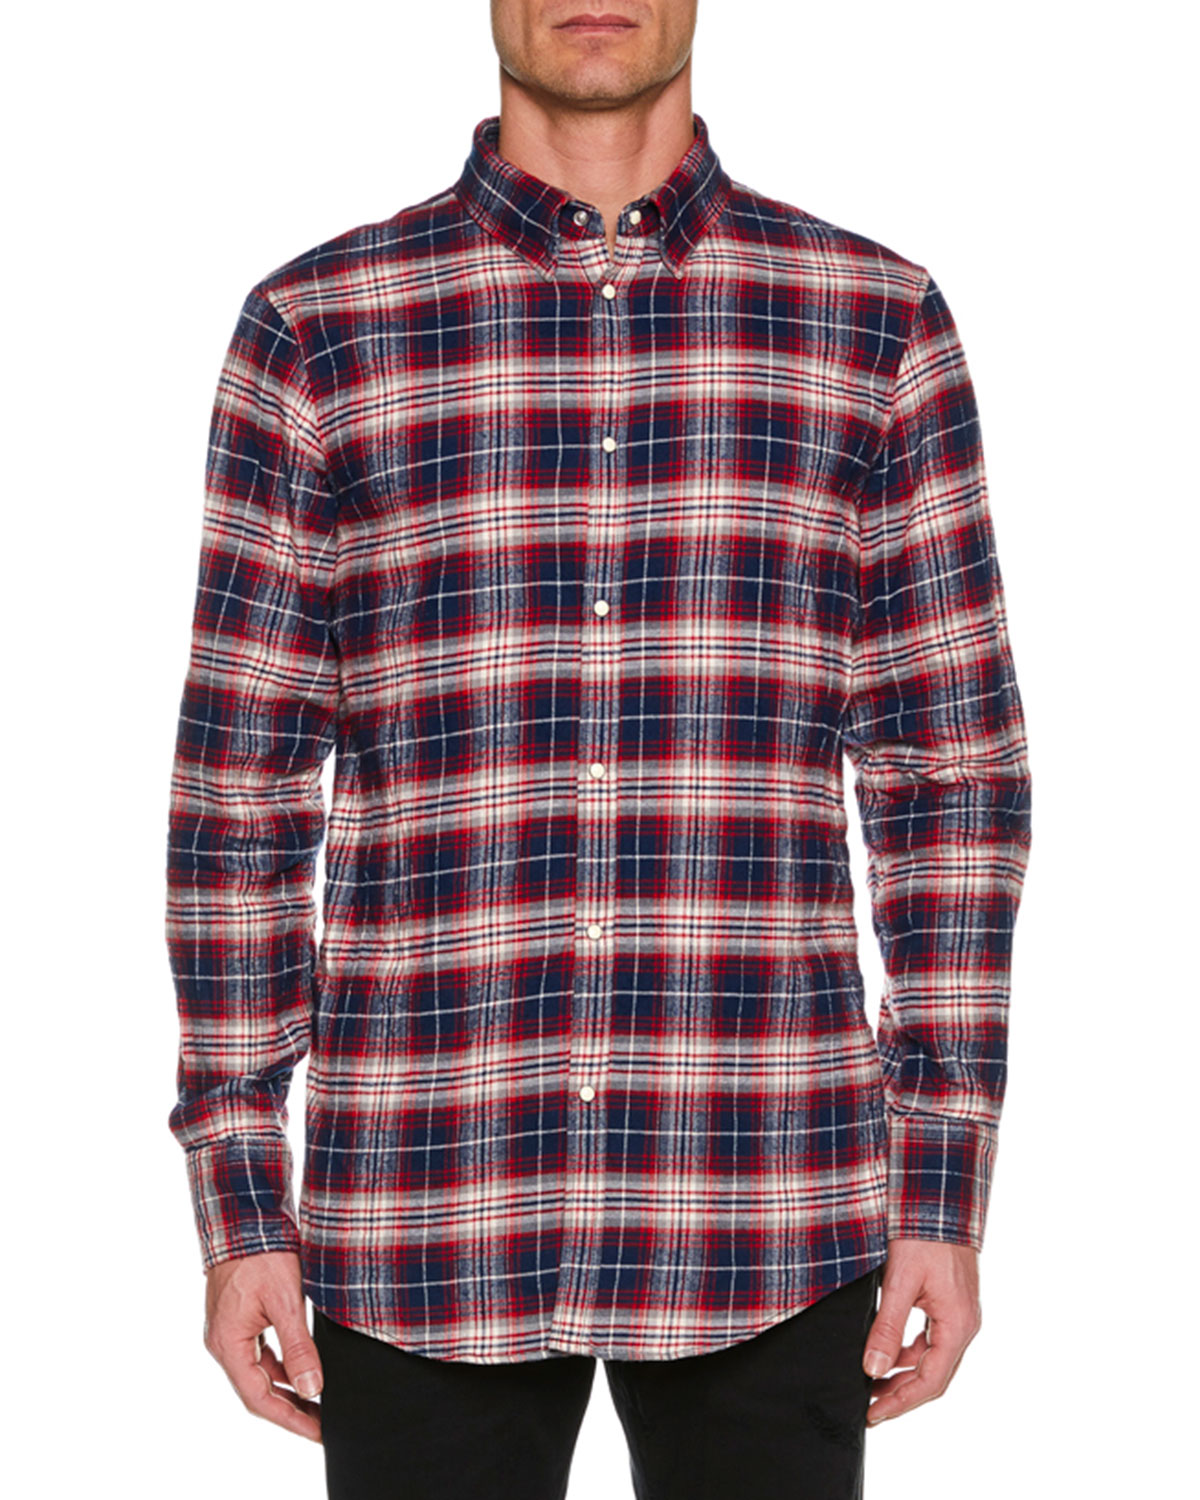 Men's Check Cotton Button-Down Shirt